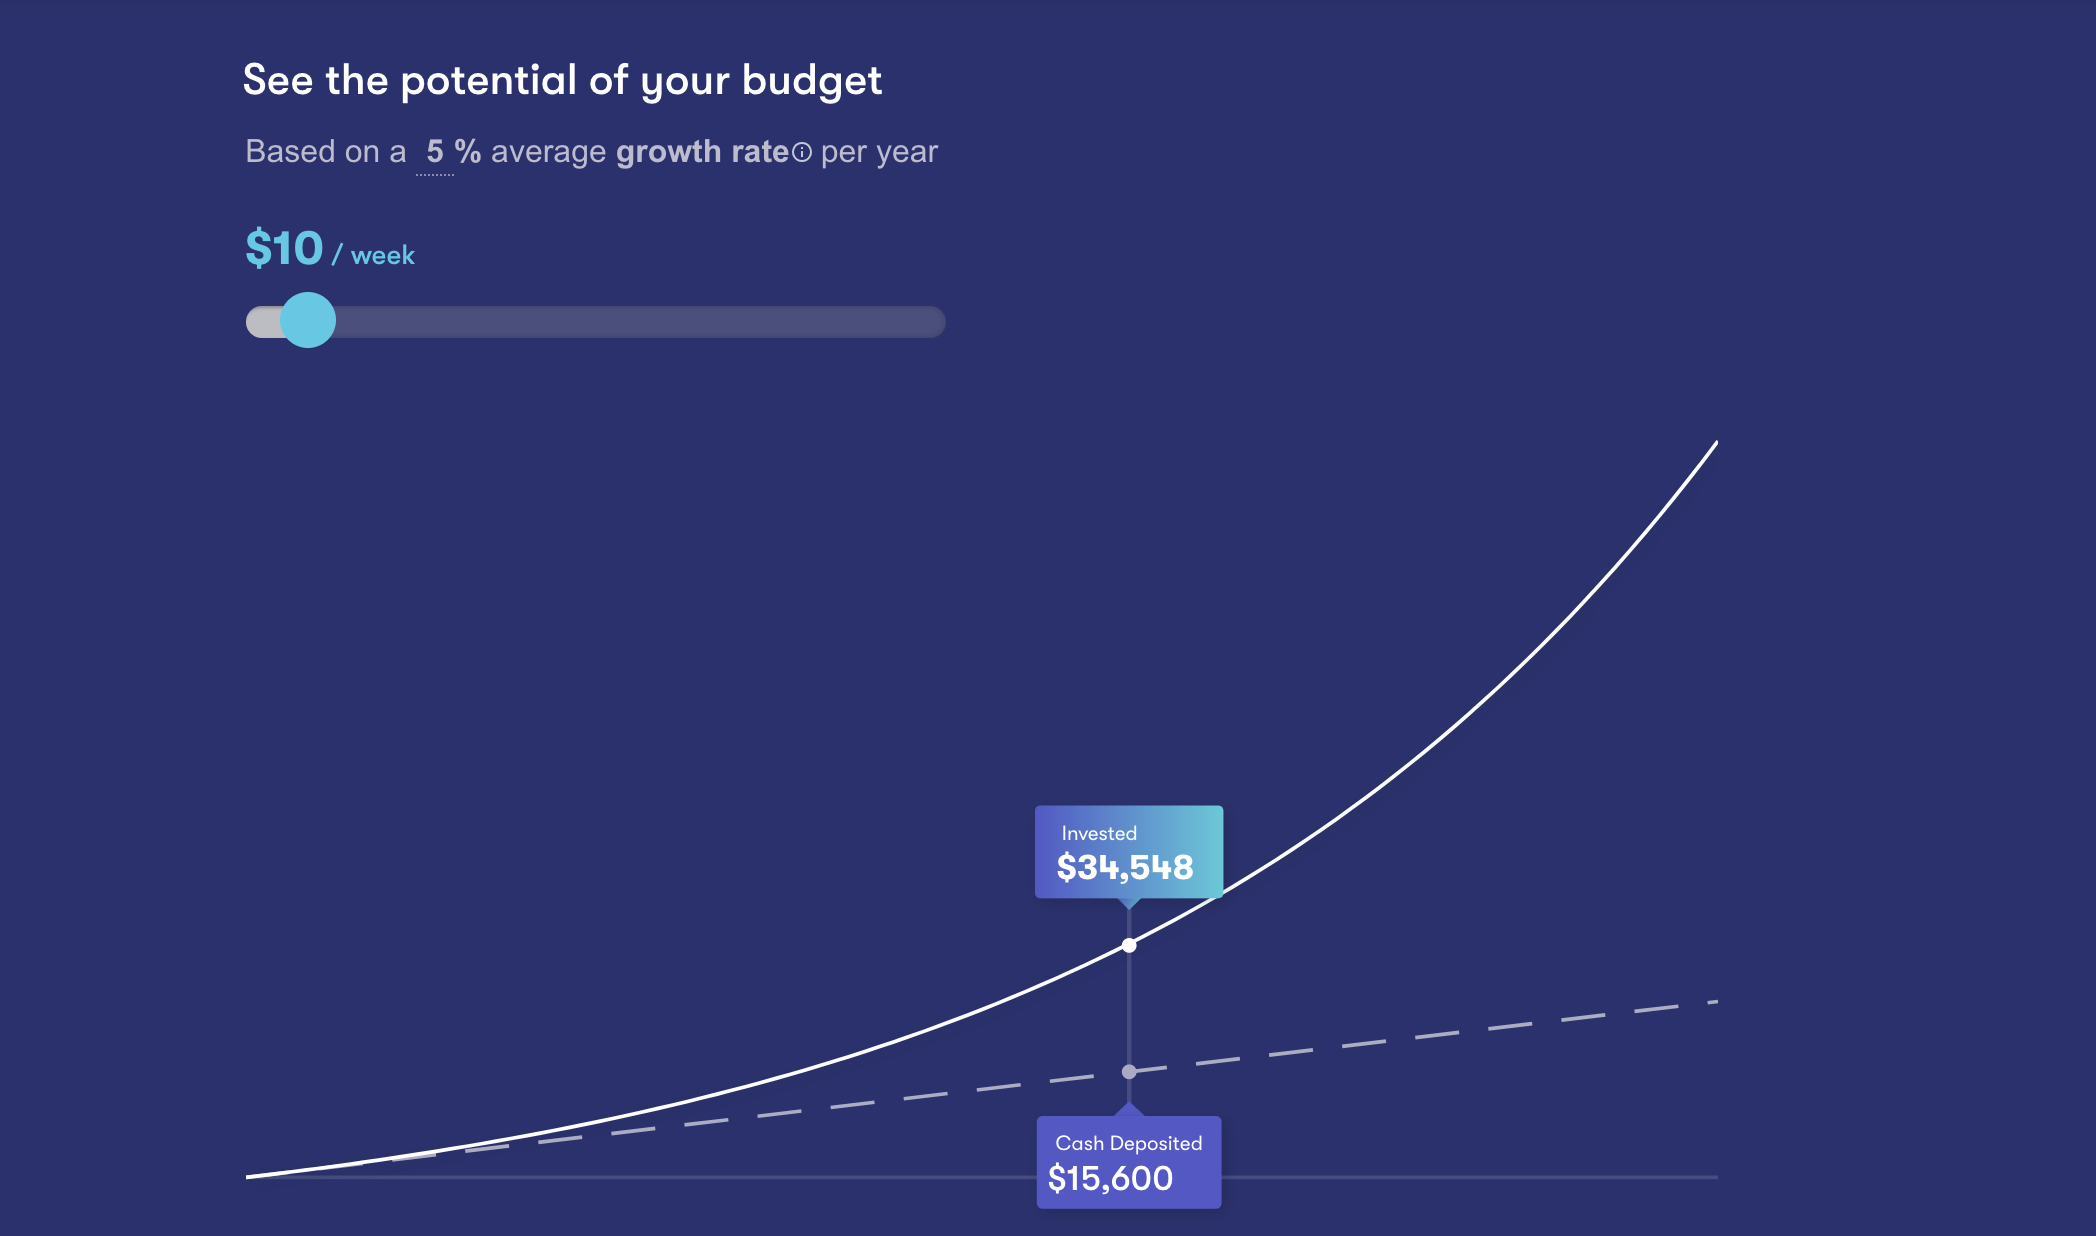 Another addictive gamification feature: checking the savings potential